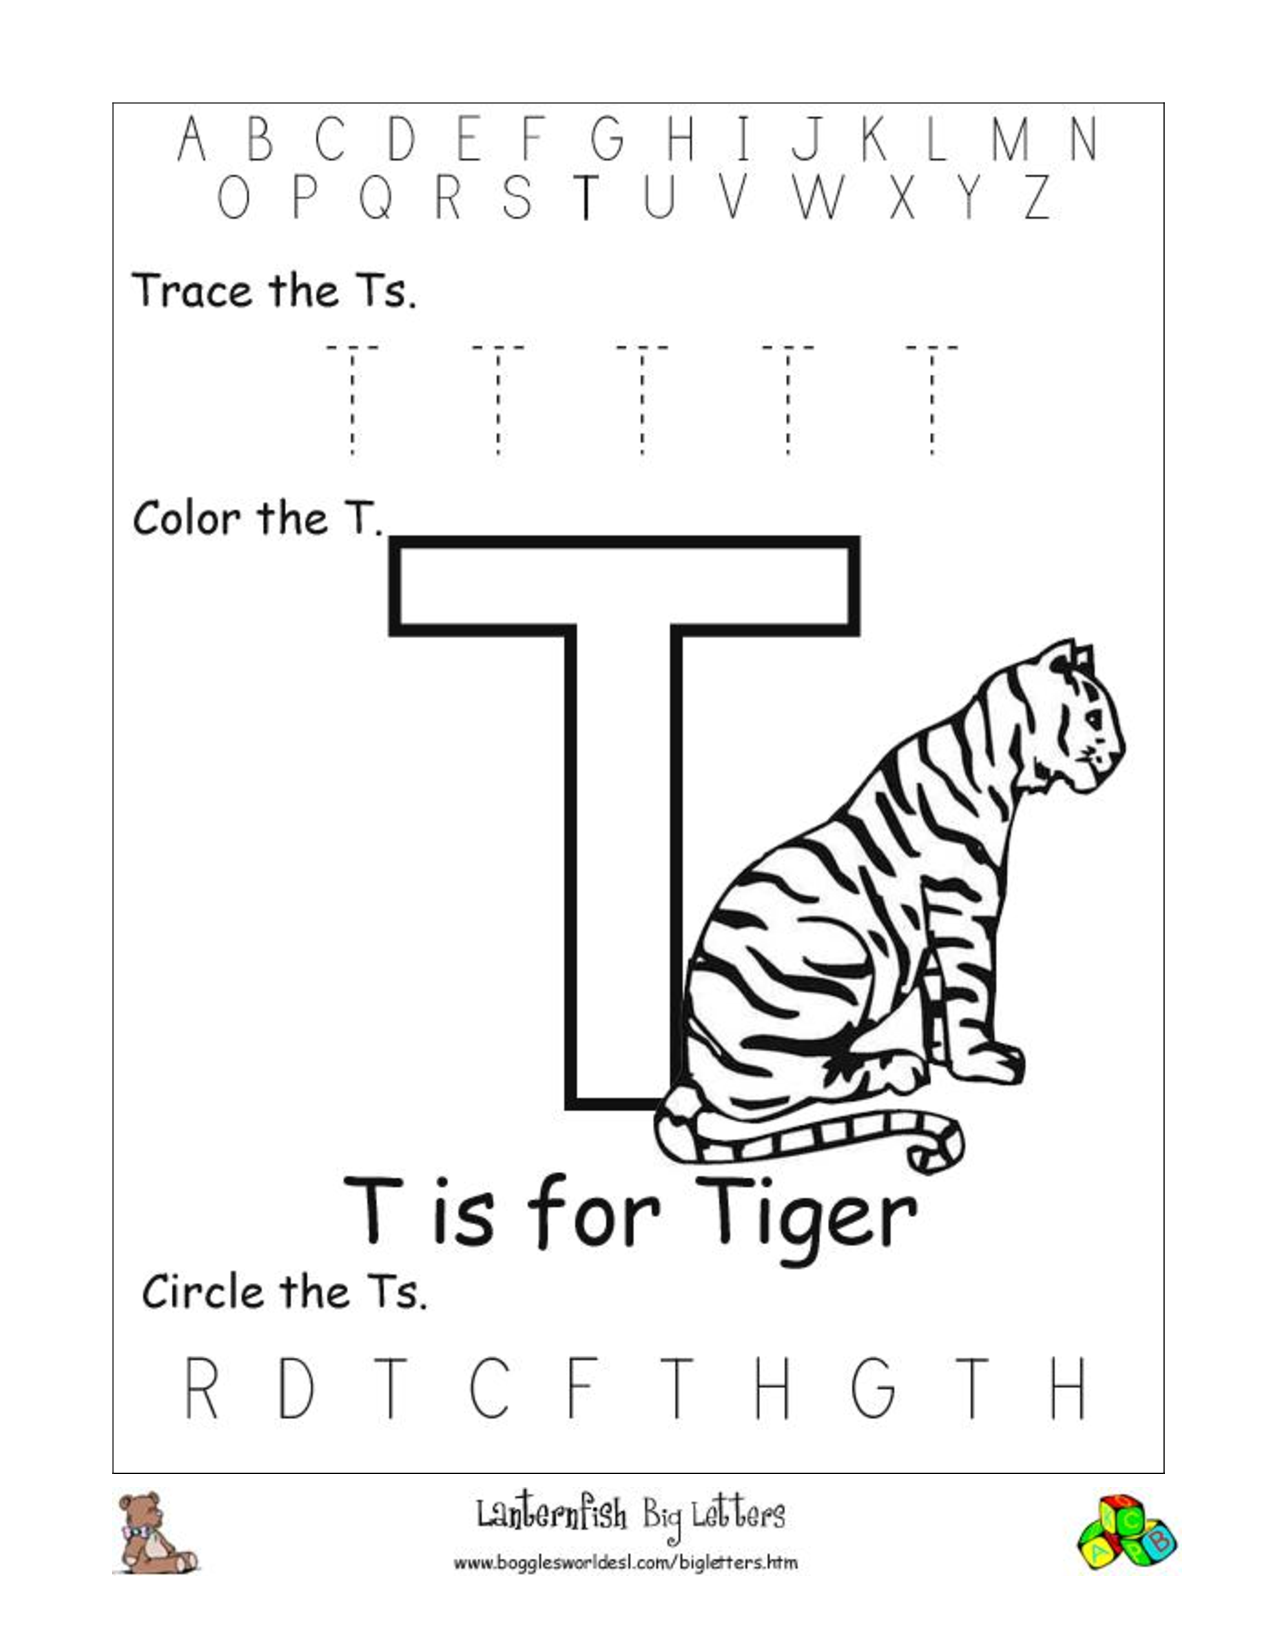 Alphabet Worksheets For Preschoolers Alphabet Worksheet Big Letter T